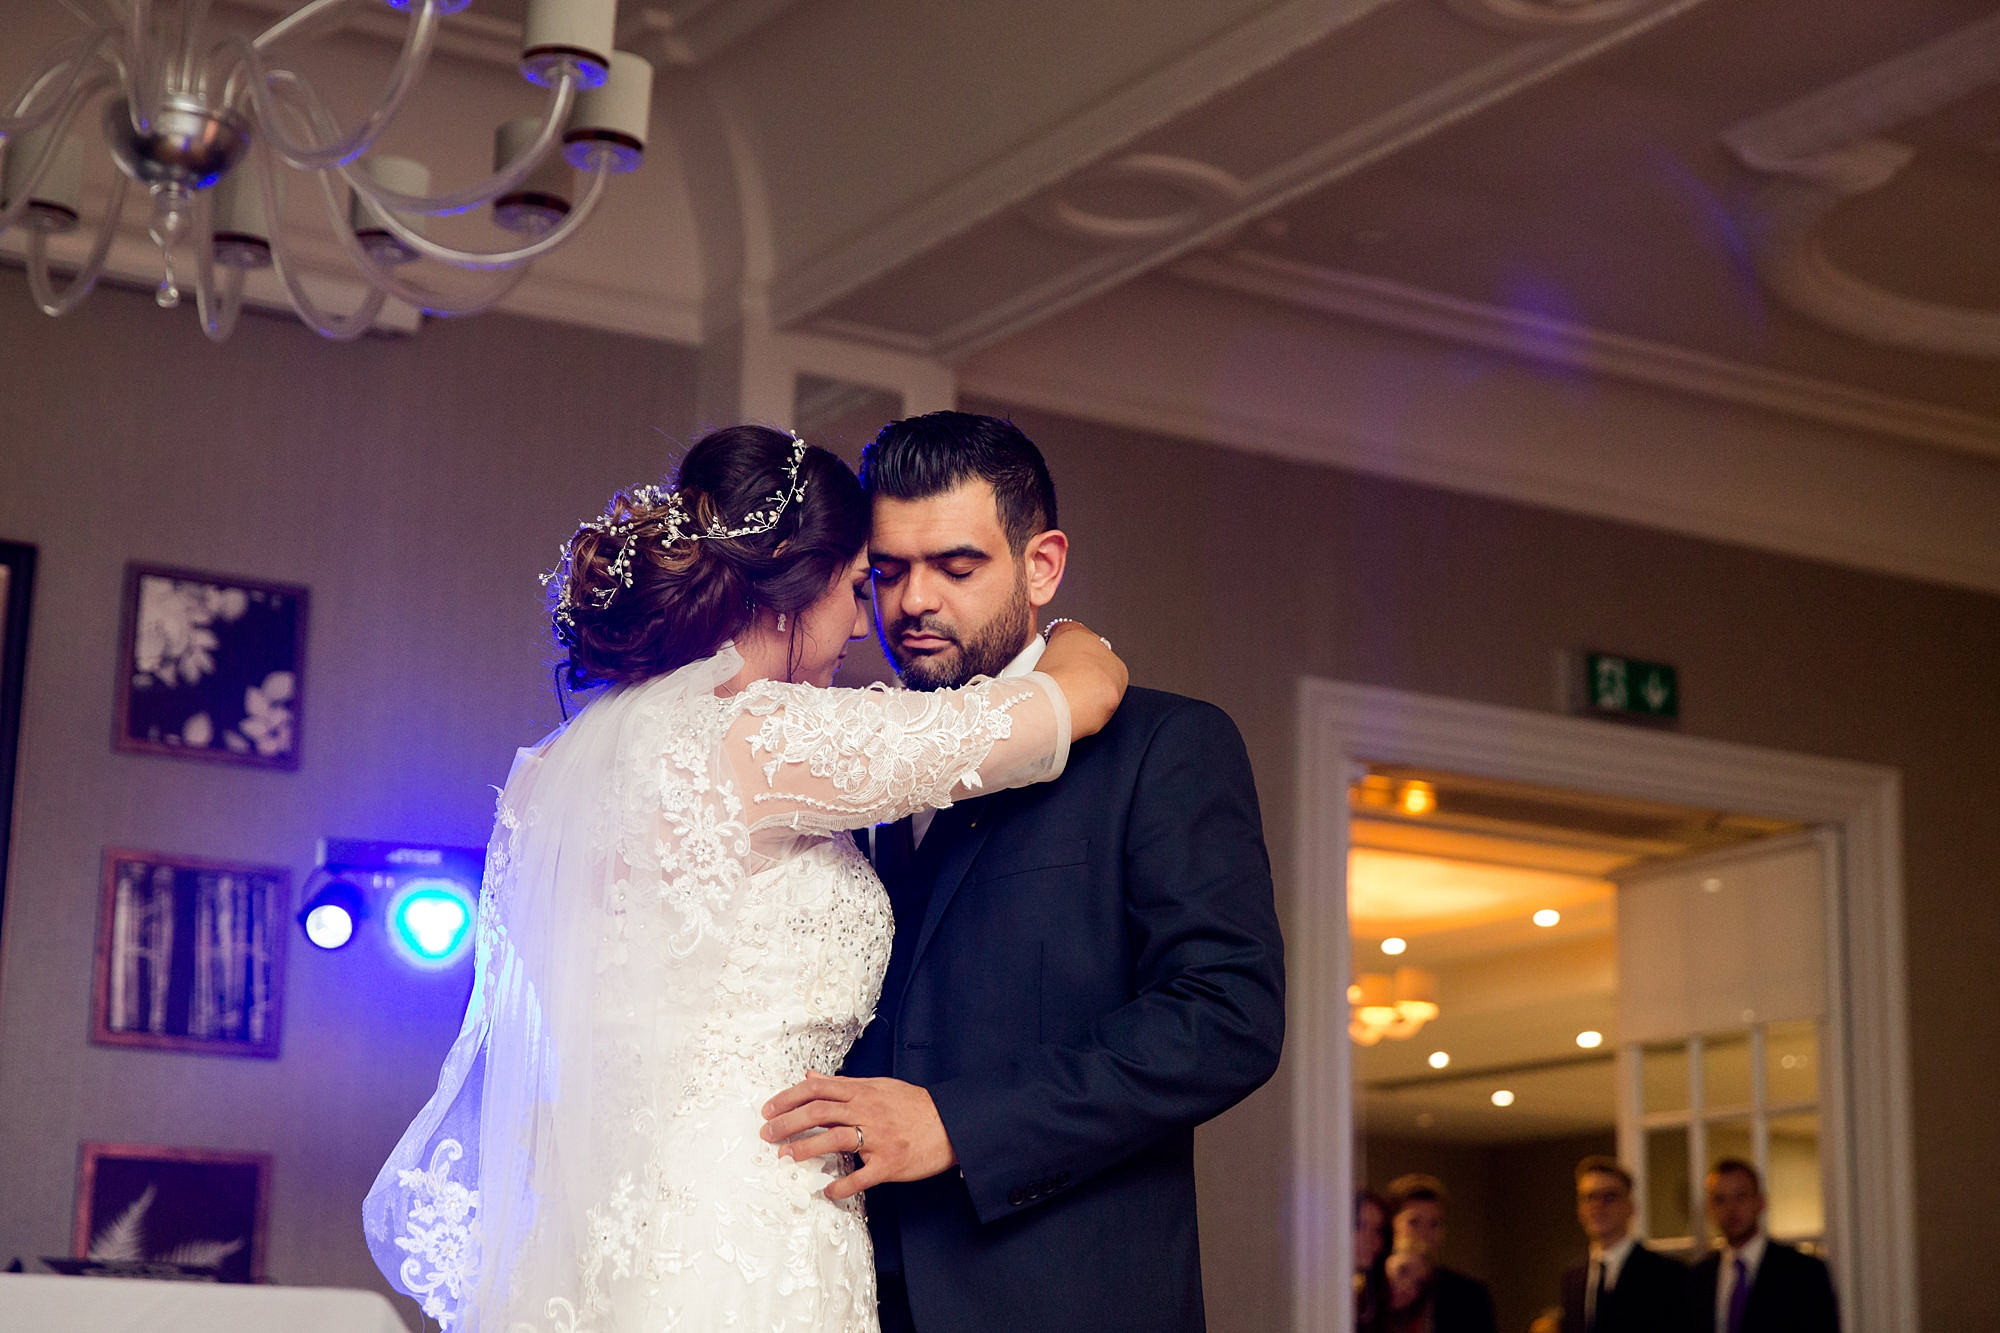 Richmond Hill Hotel wedding bride and groom dance together